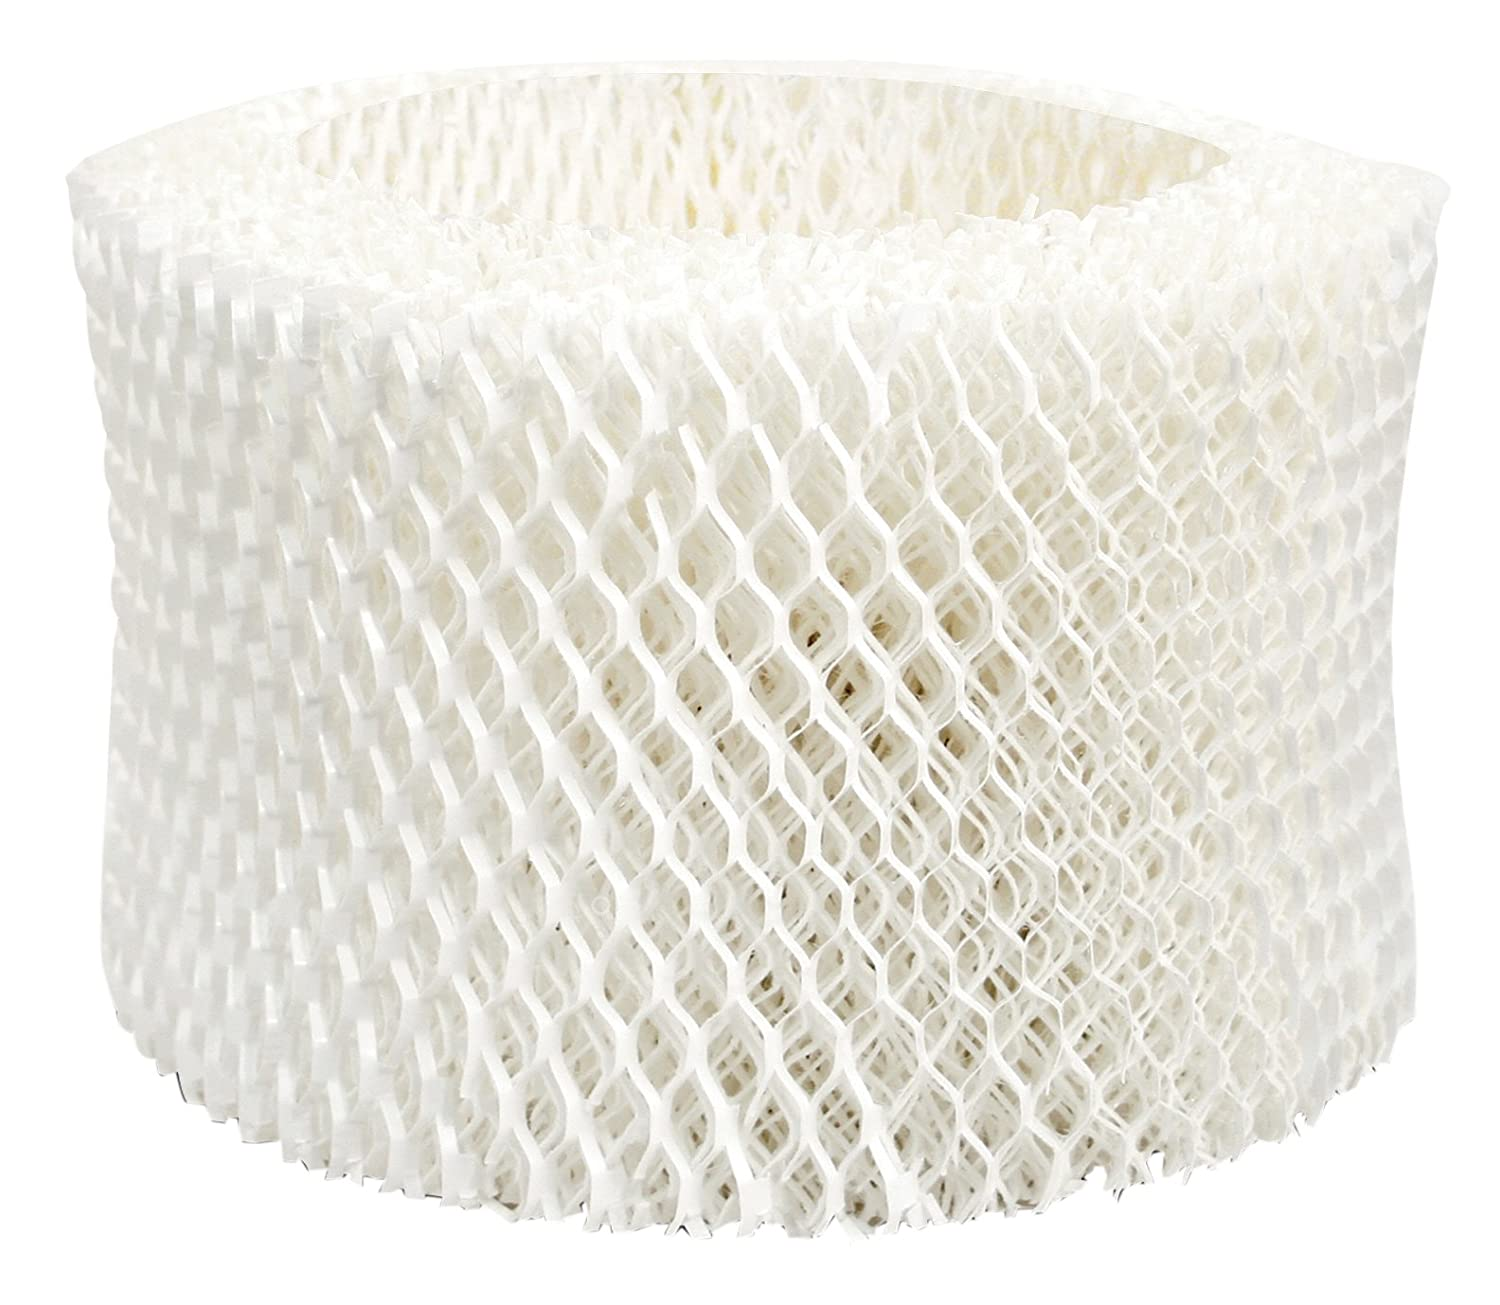 Honeywell Replacement Humidifier Filter A